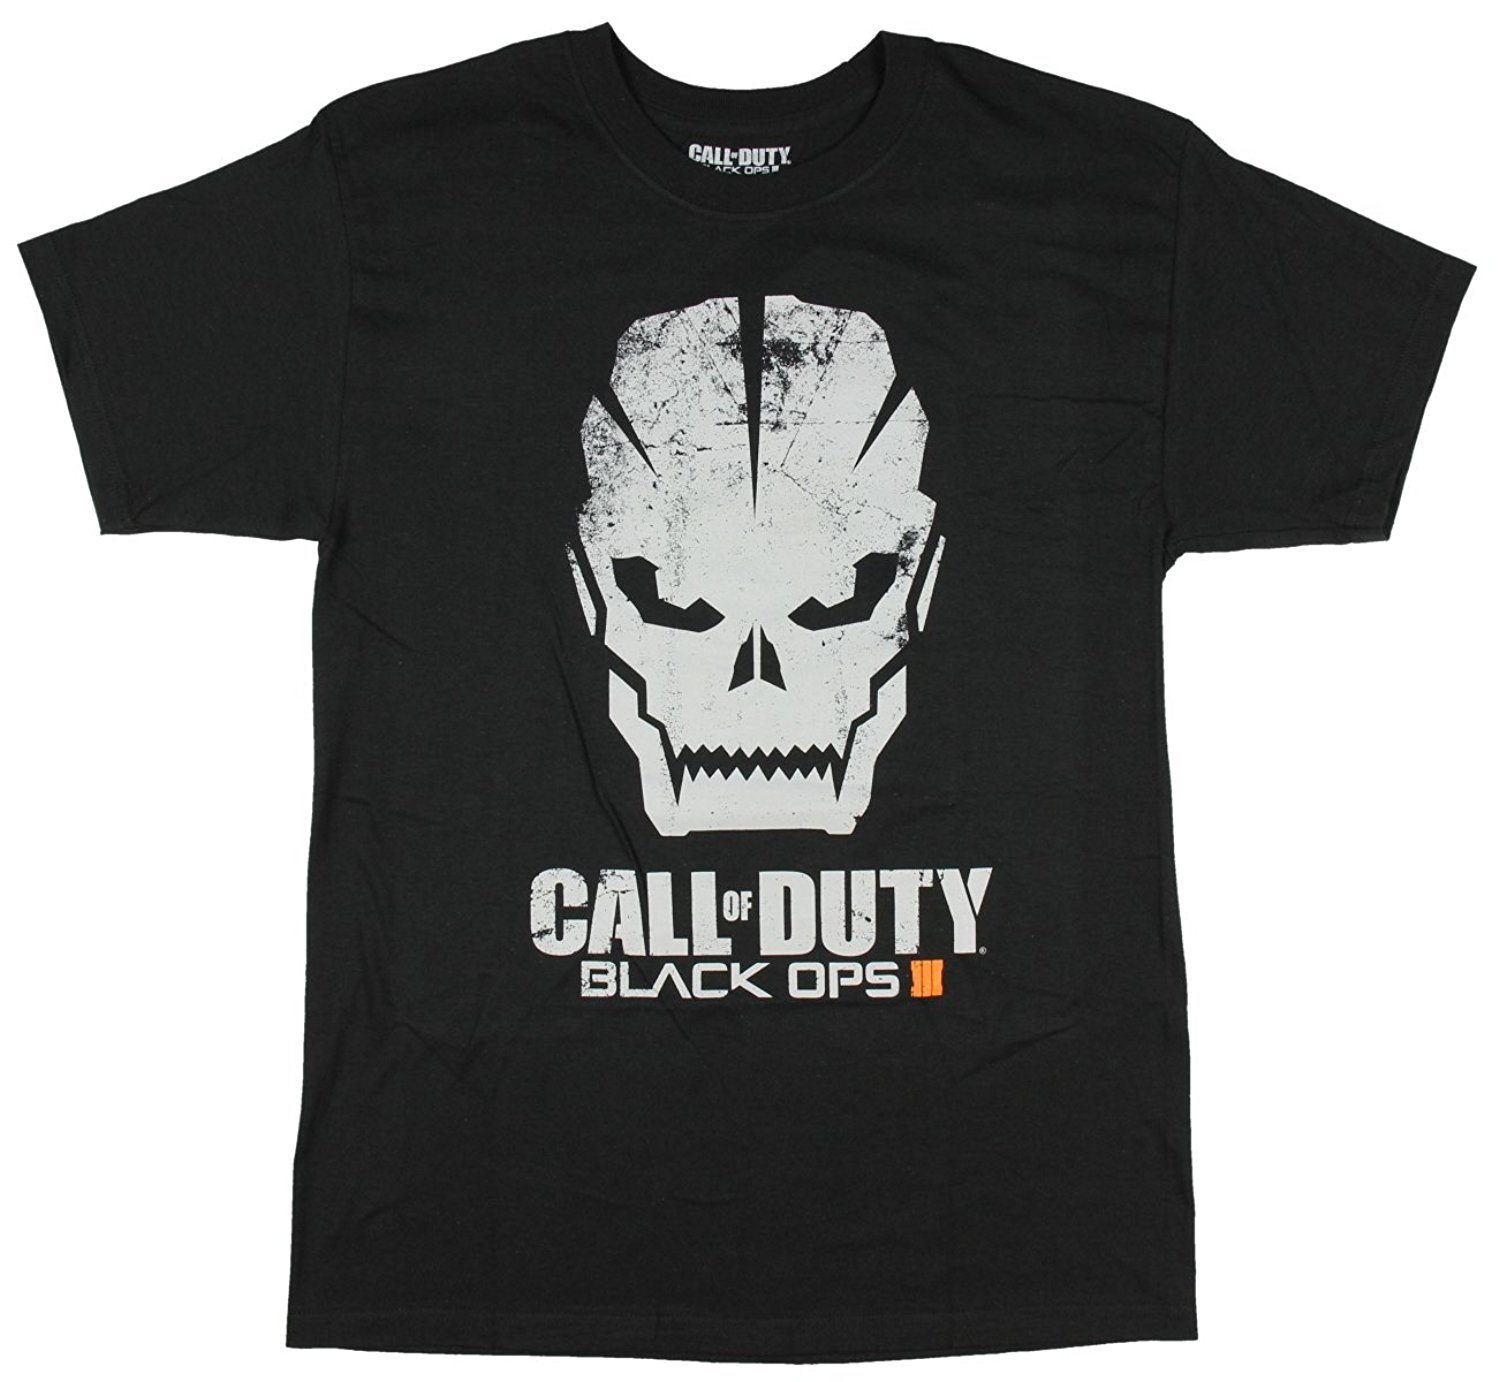 Call of Duty Black Ops III Licensed Graphic